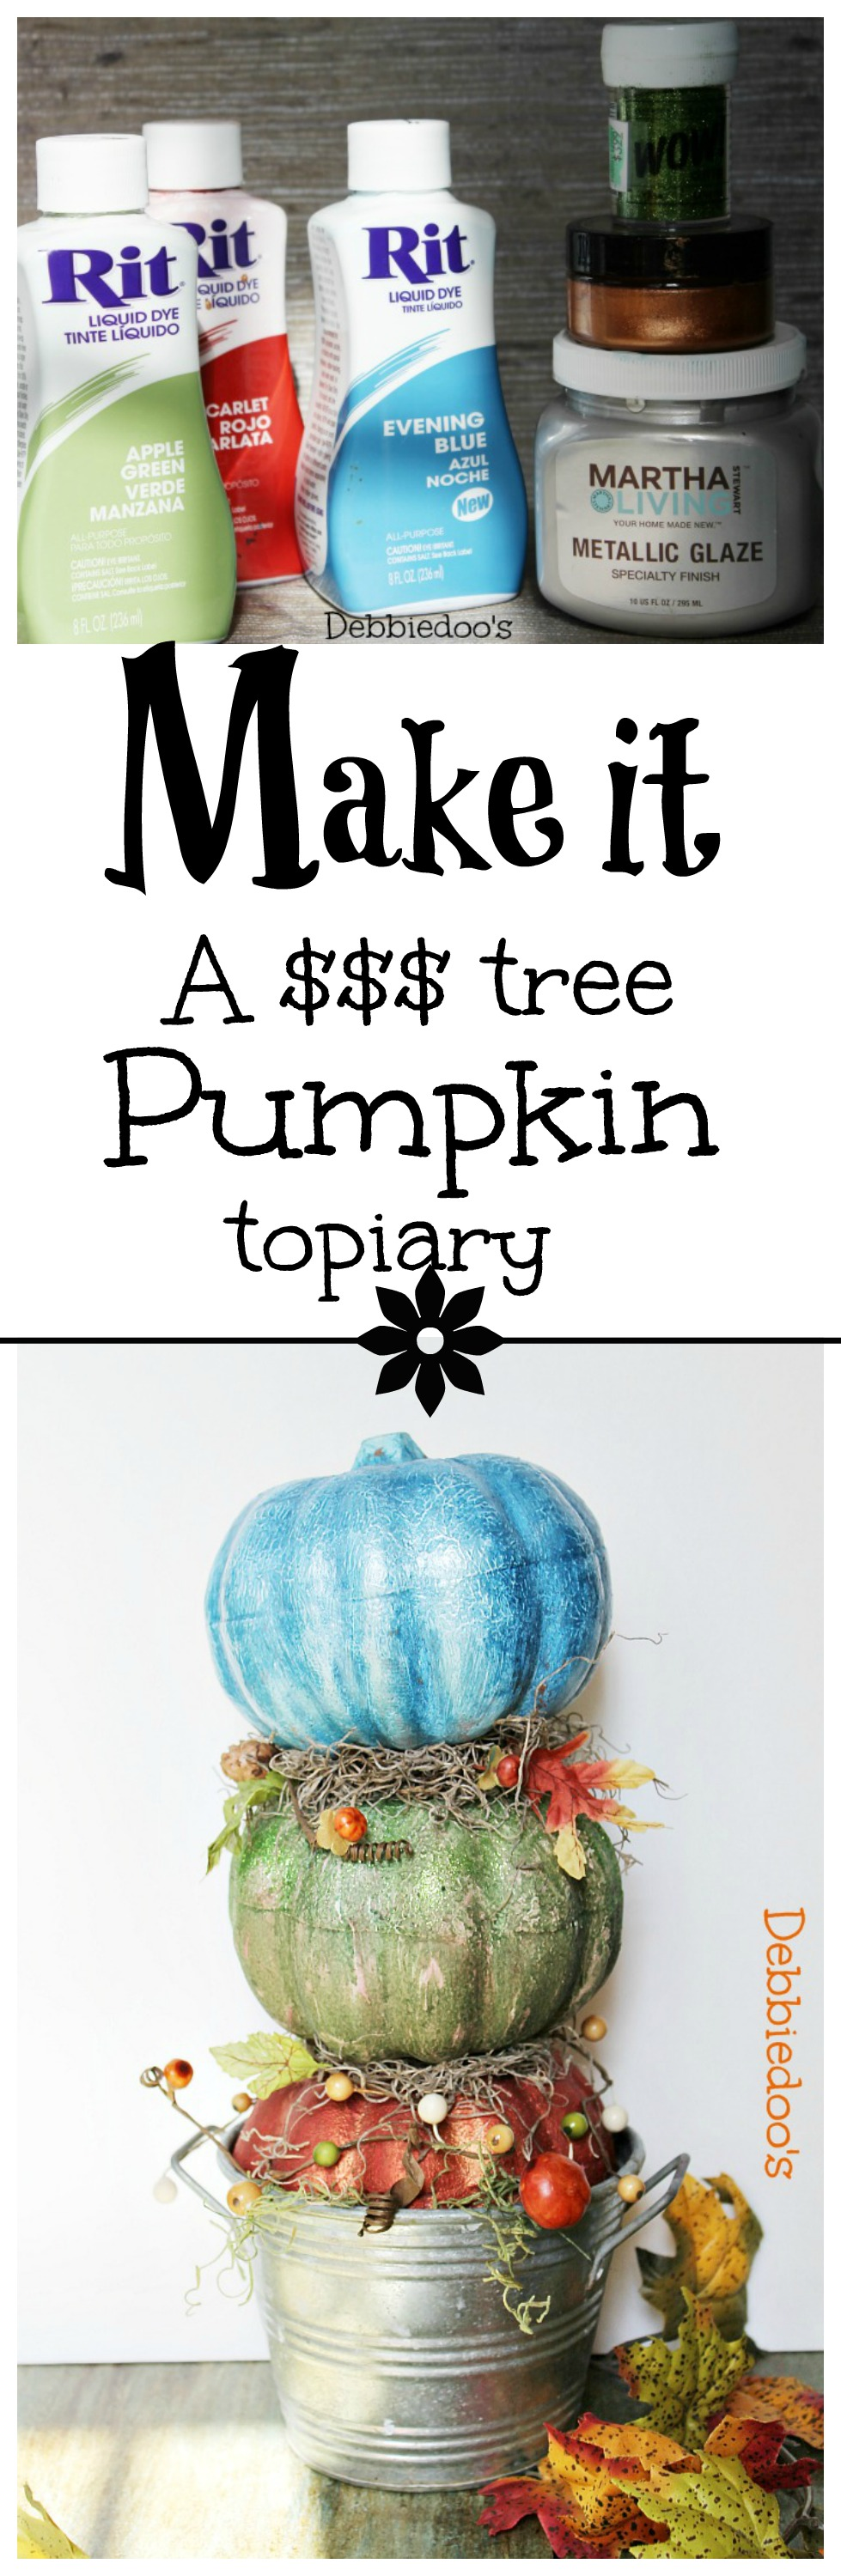 Dollar Tree Pumpkin Topiary Debbiedoos